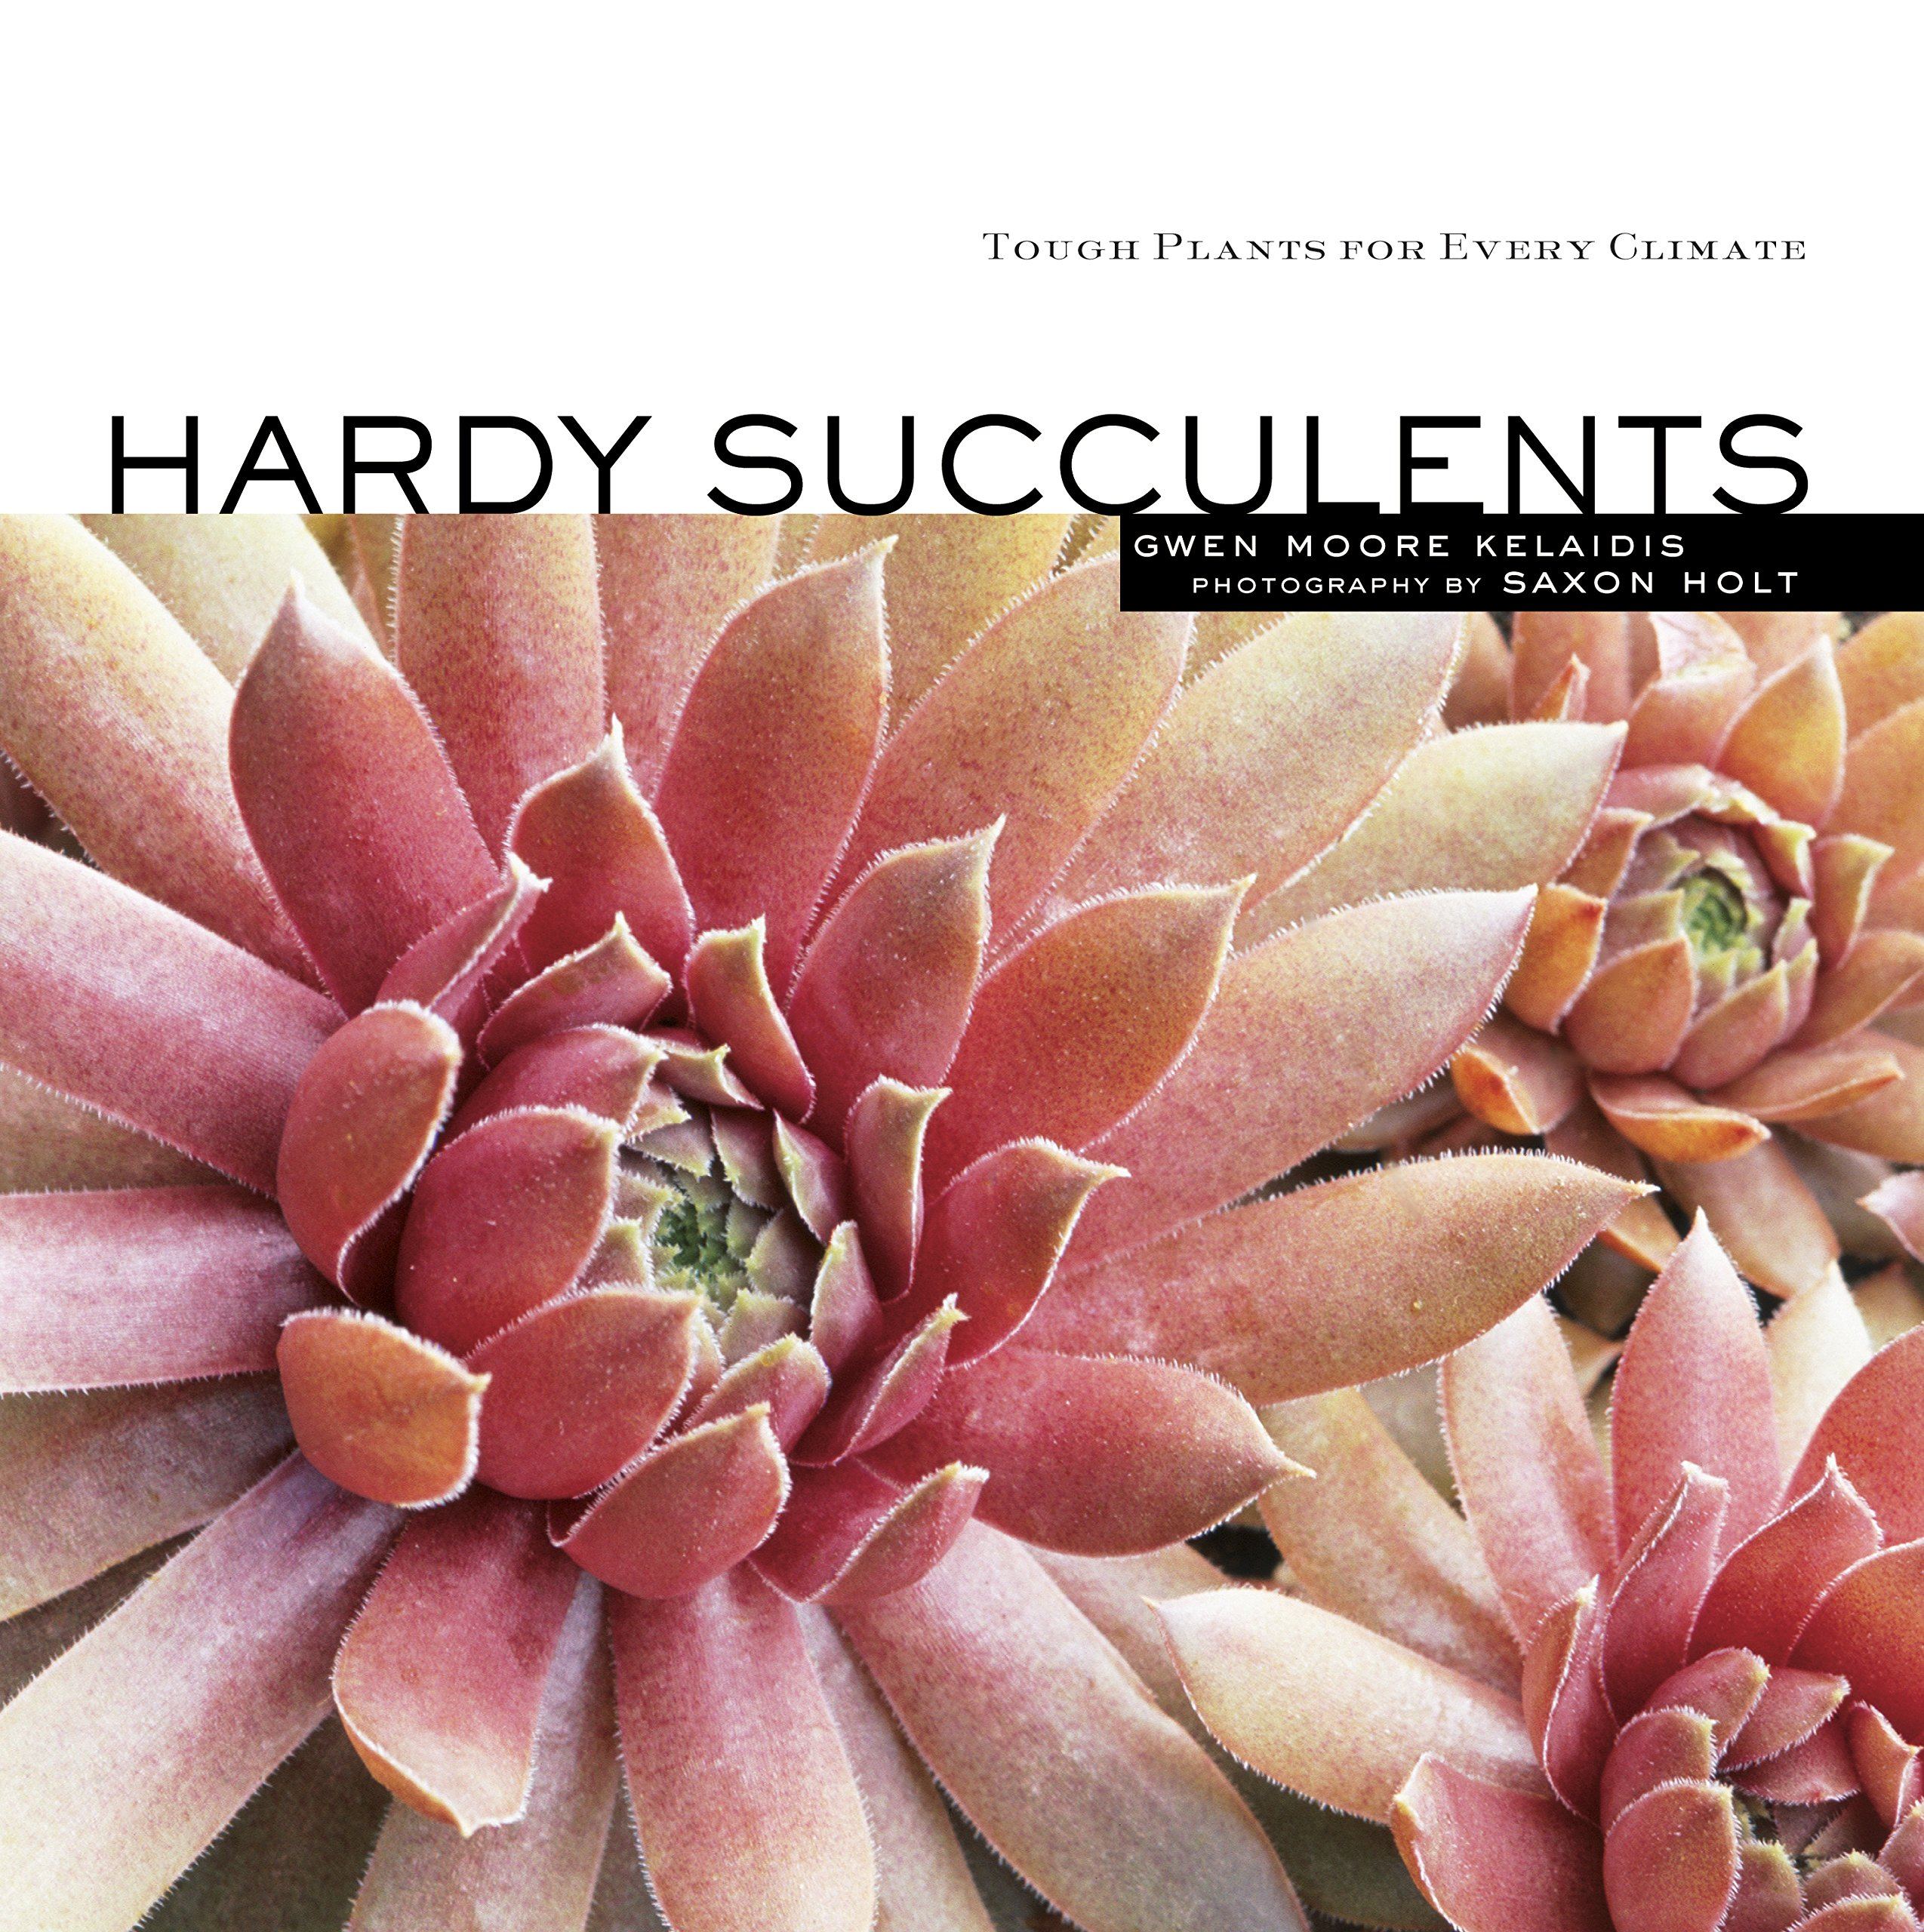 hardy succulents tough plants for every climate gwen moore